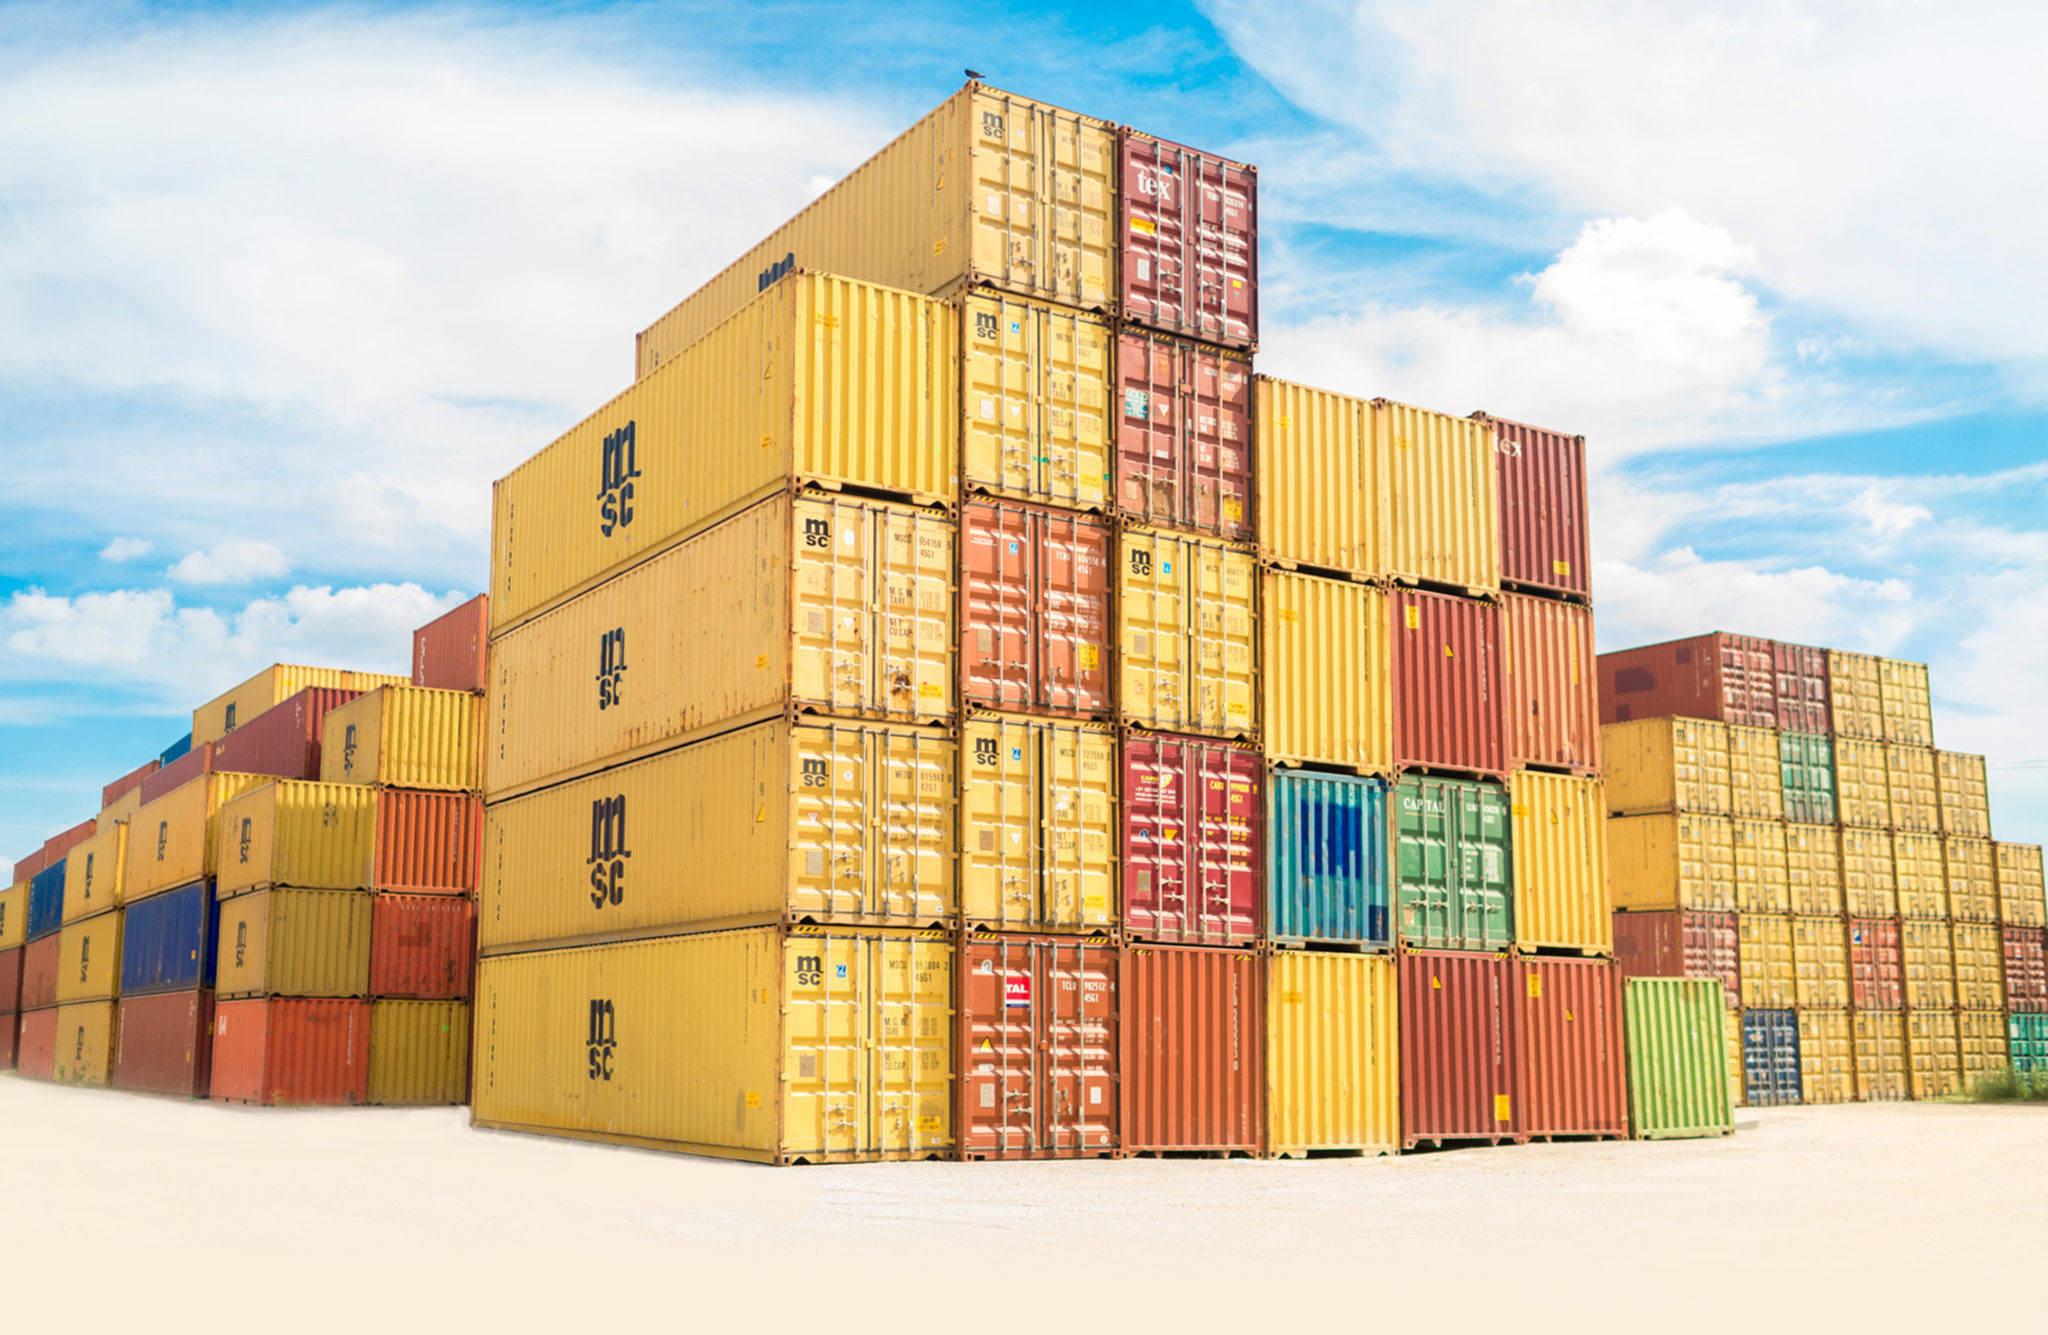 kisscc0-docker-intermodal-container-shipping-container-kub